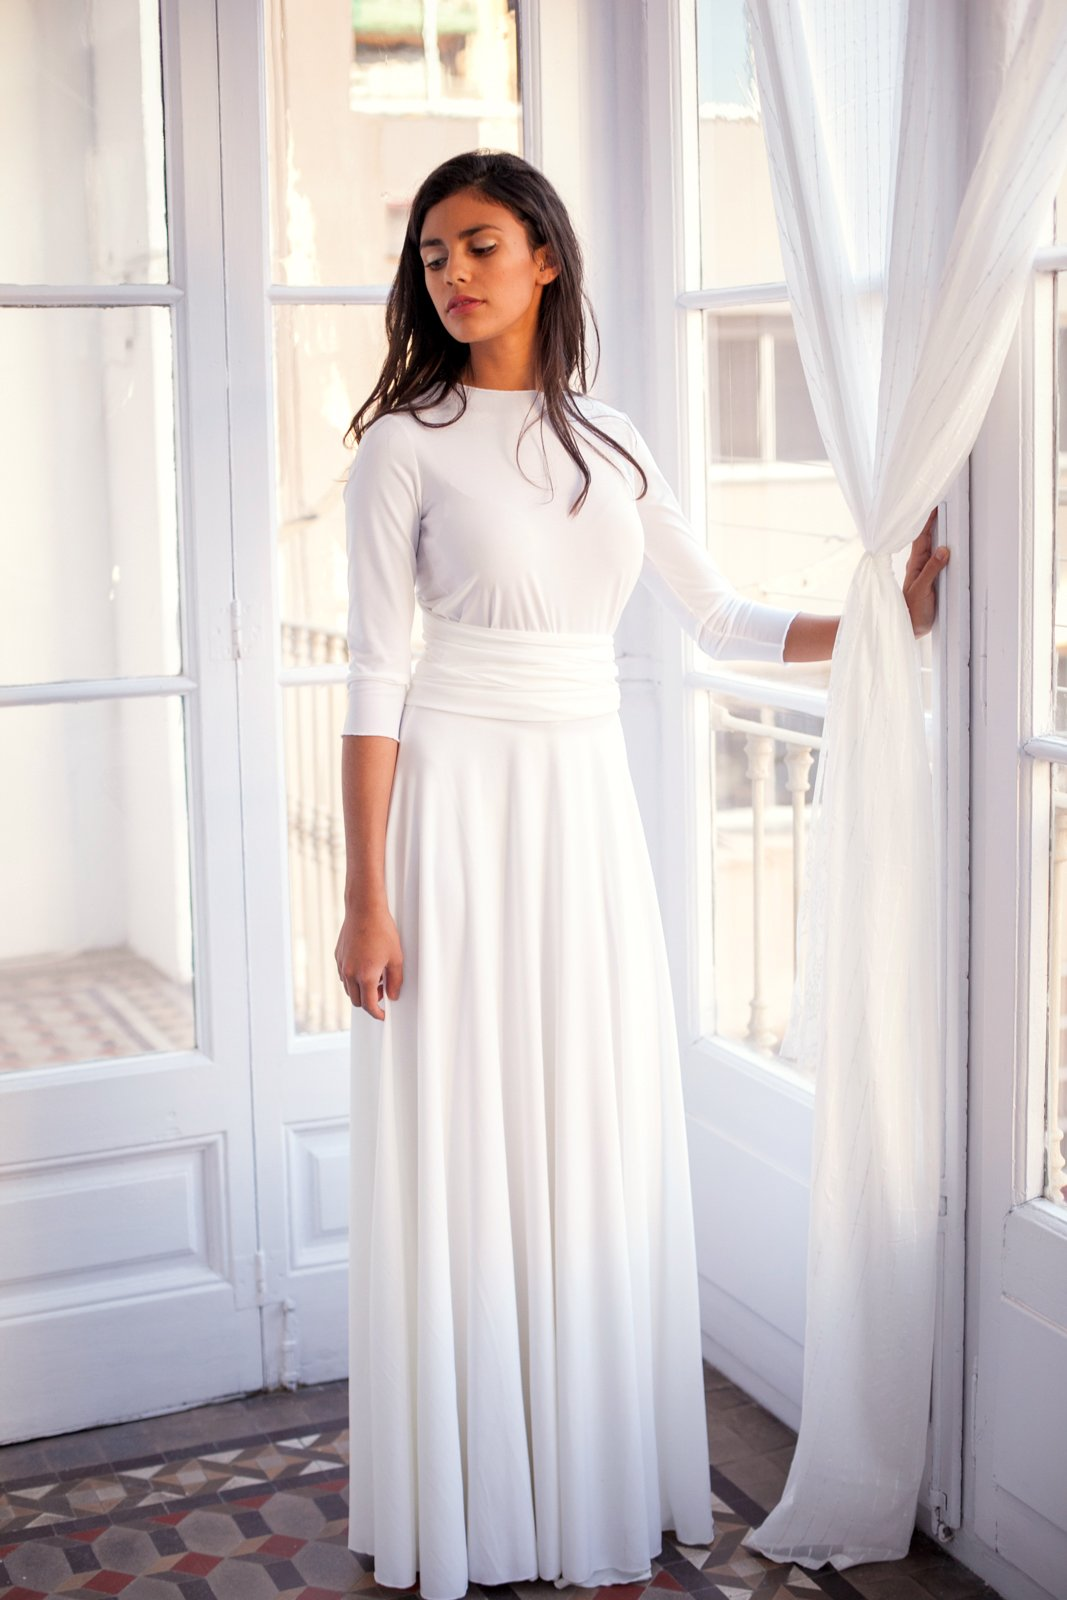 Long sleeved wedding dress, ivory white bridal gown with 3/4 sleeve, white wrap dress, convertible wedding dress, wedding dress with sleeves